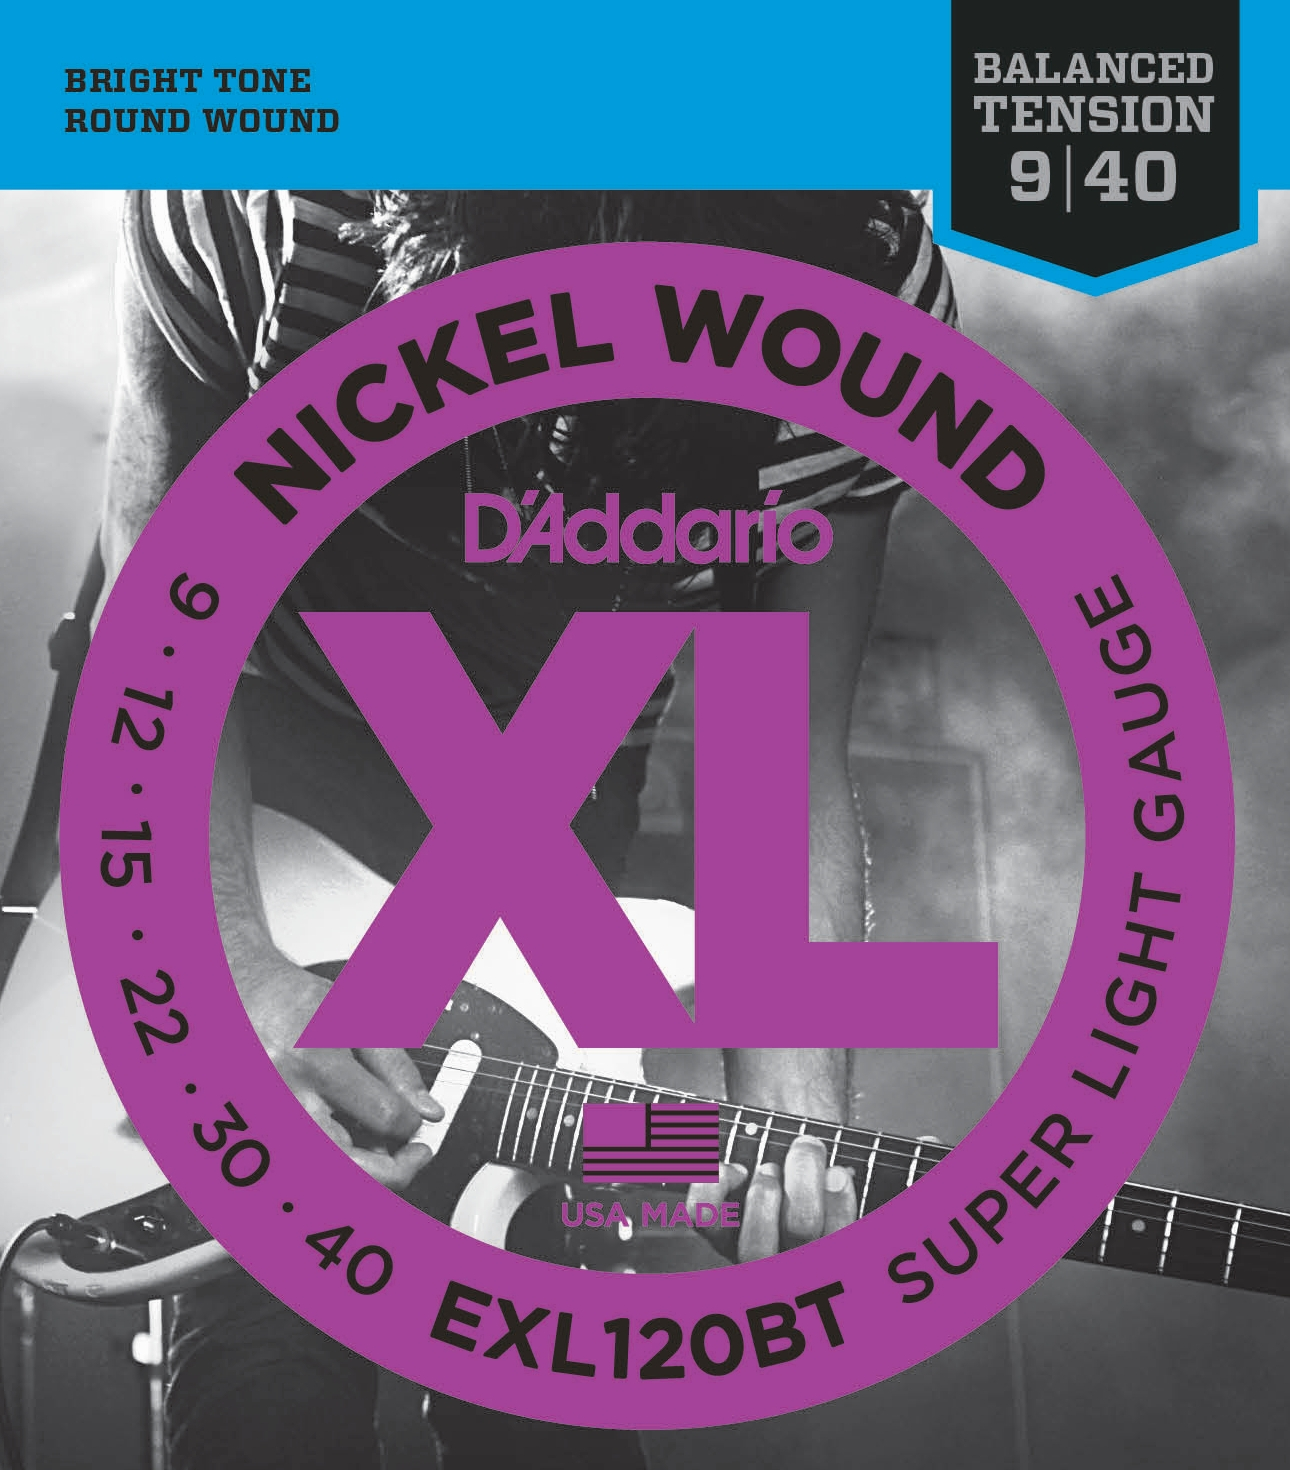 D'Addario EXL120BT Nickel Wound Electric Guitar Strings, Balanced Tension Super Light, 9-40 D'Addario